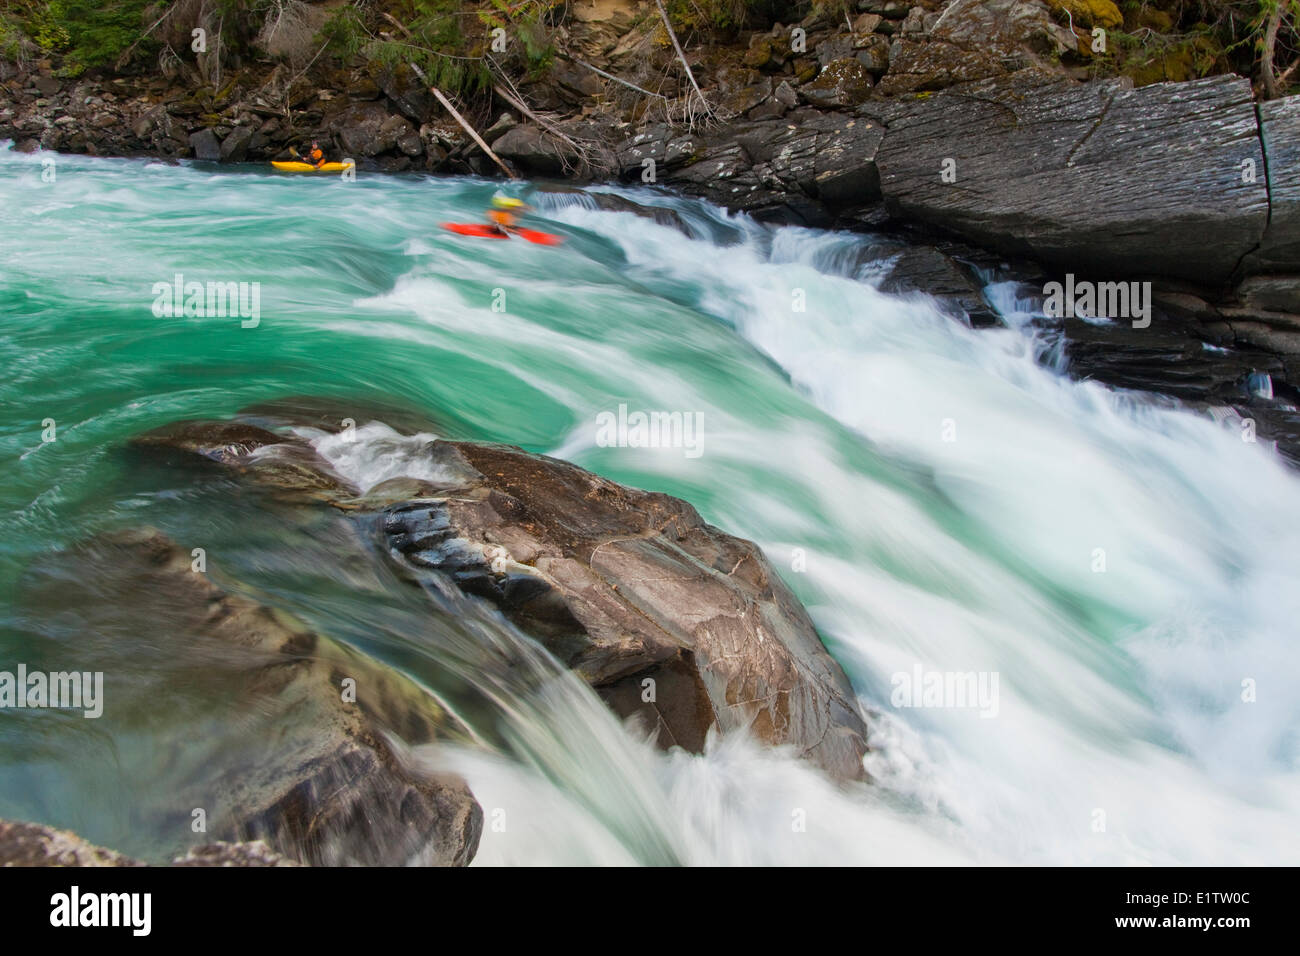 Two male kayakers drop into a big rapid on the Fraser River, Mt Robson Provincial Park, BC - Stock Image